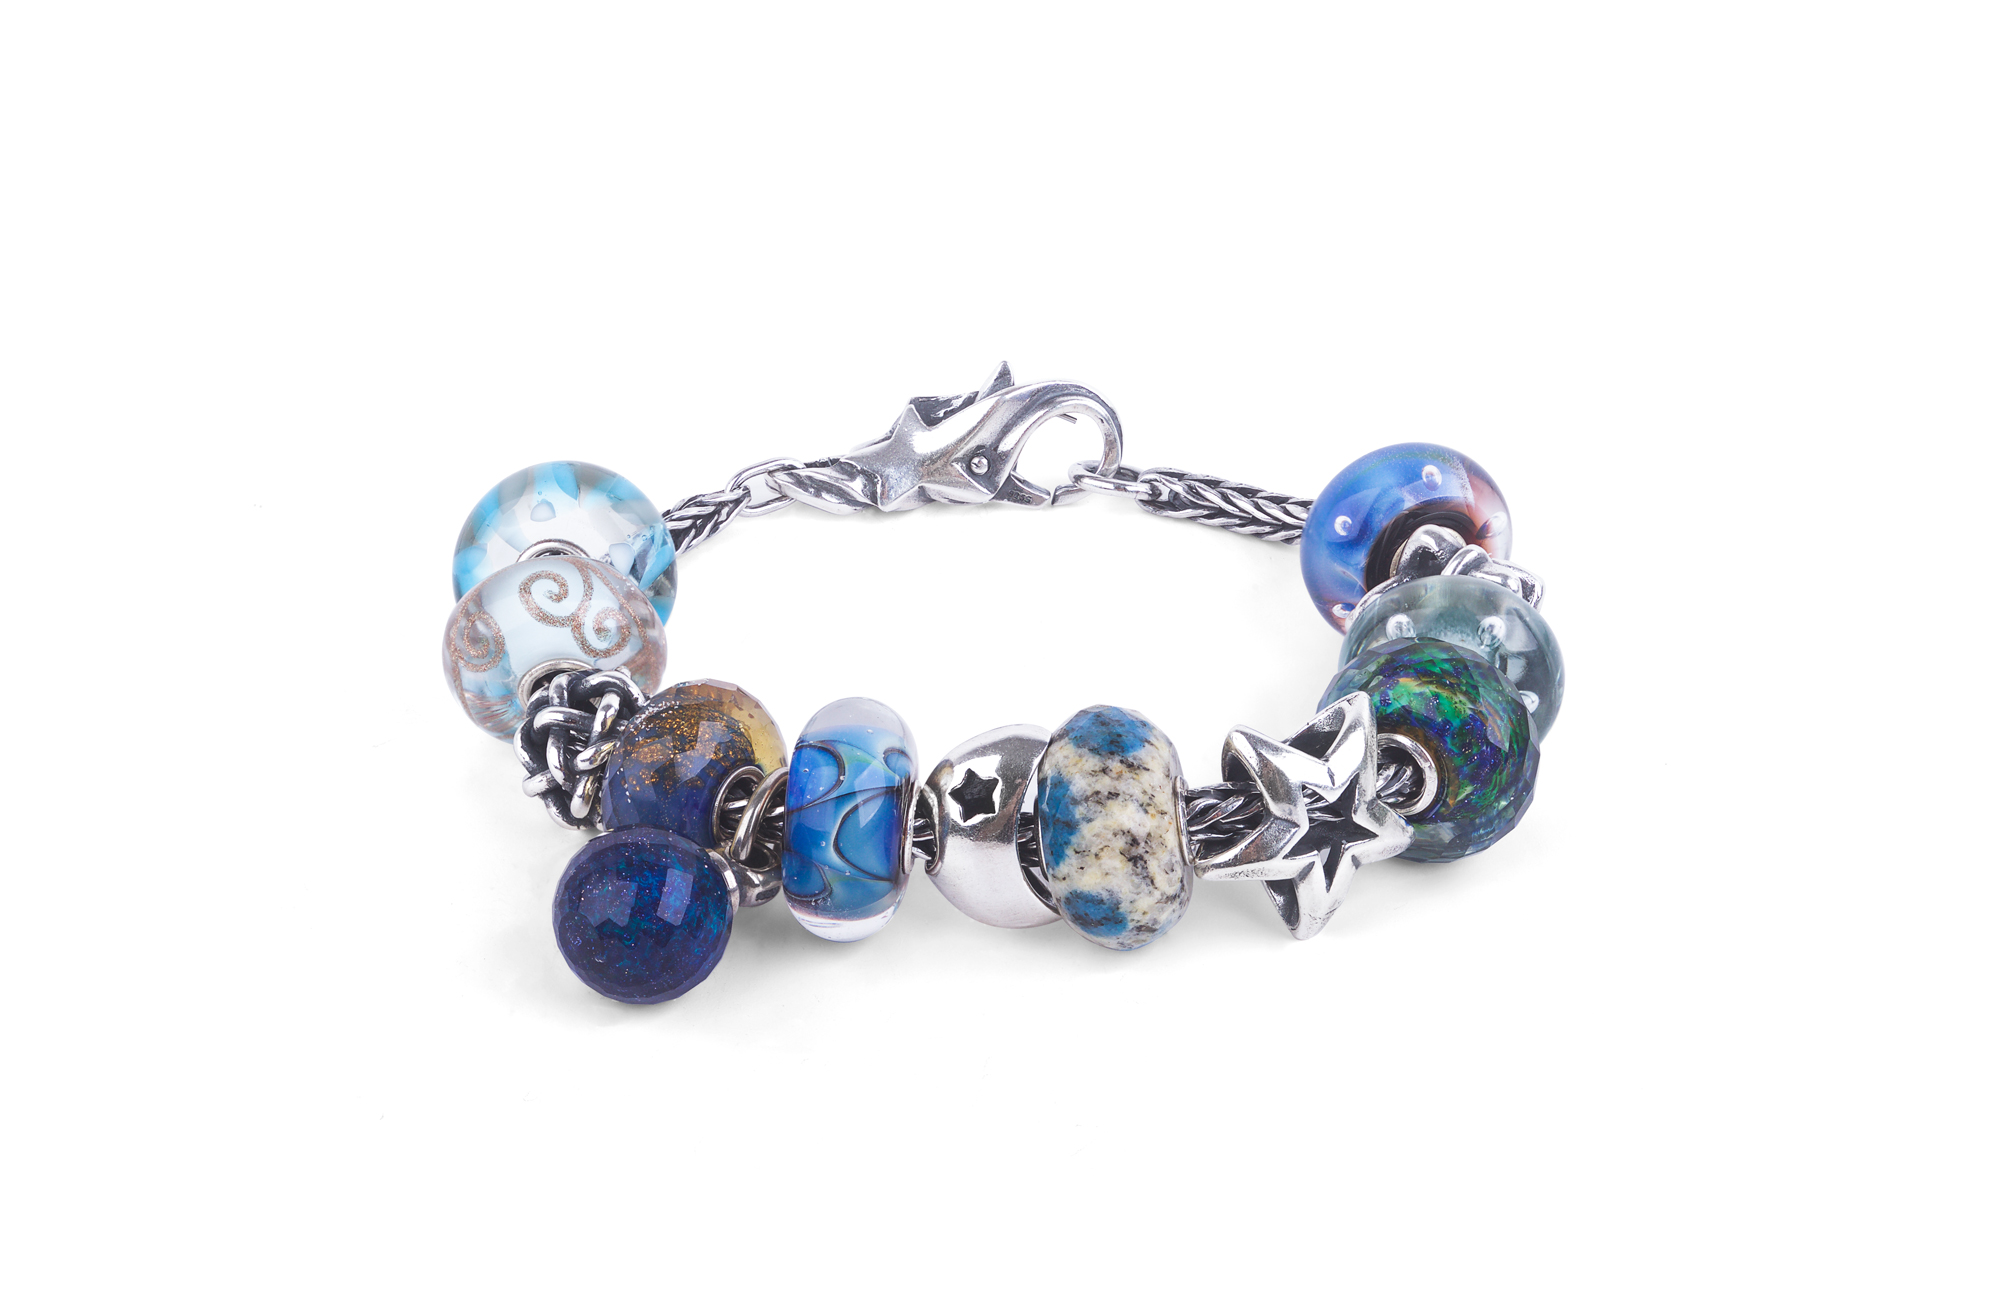 Sterling silver bracelet with charms, Lucky star silver lock, Clouds silver bead, labradorite gemstone bead, Misty bubble Joy glass Bead, Positive change silver bead